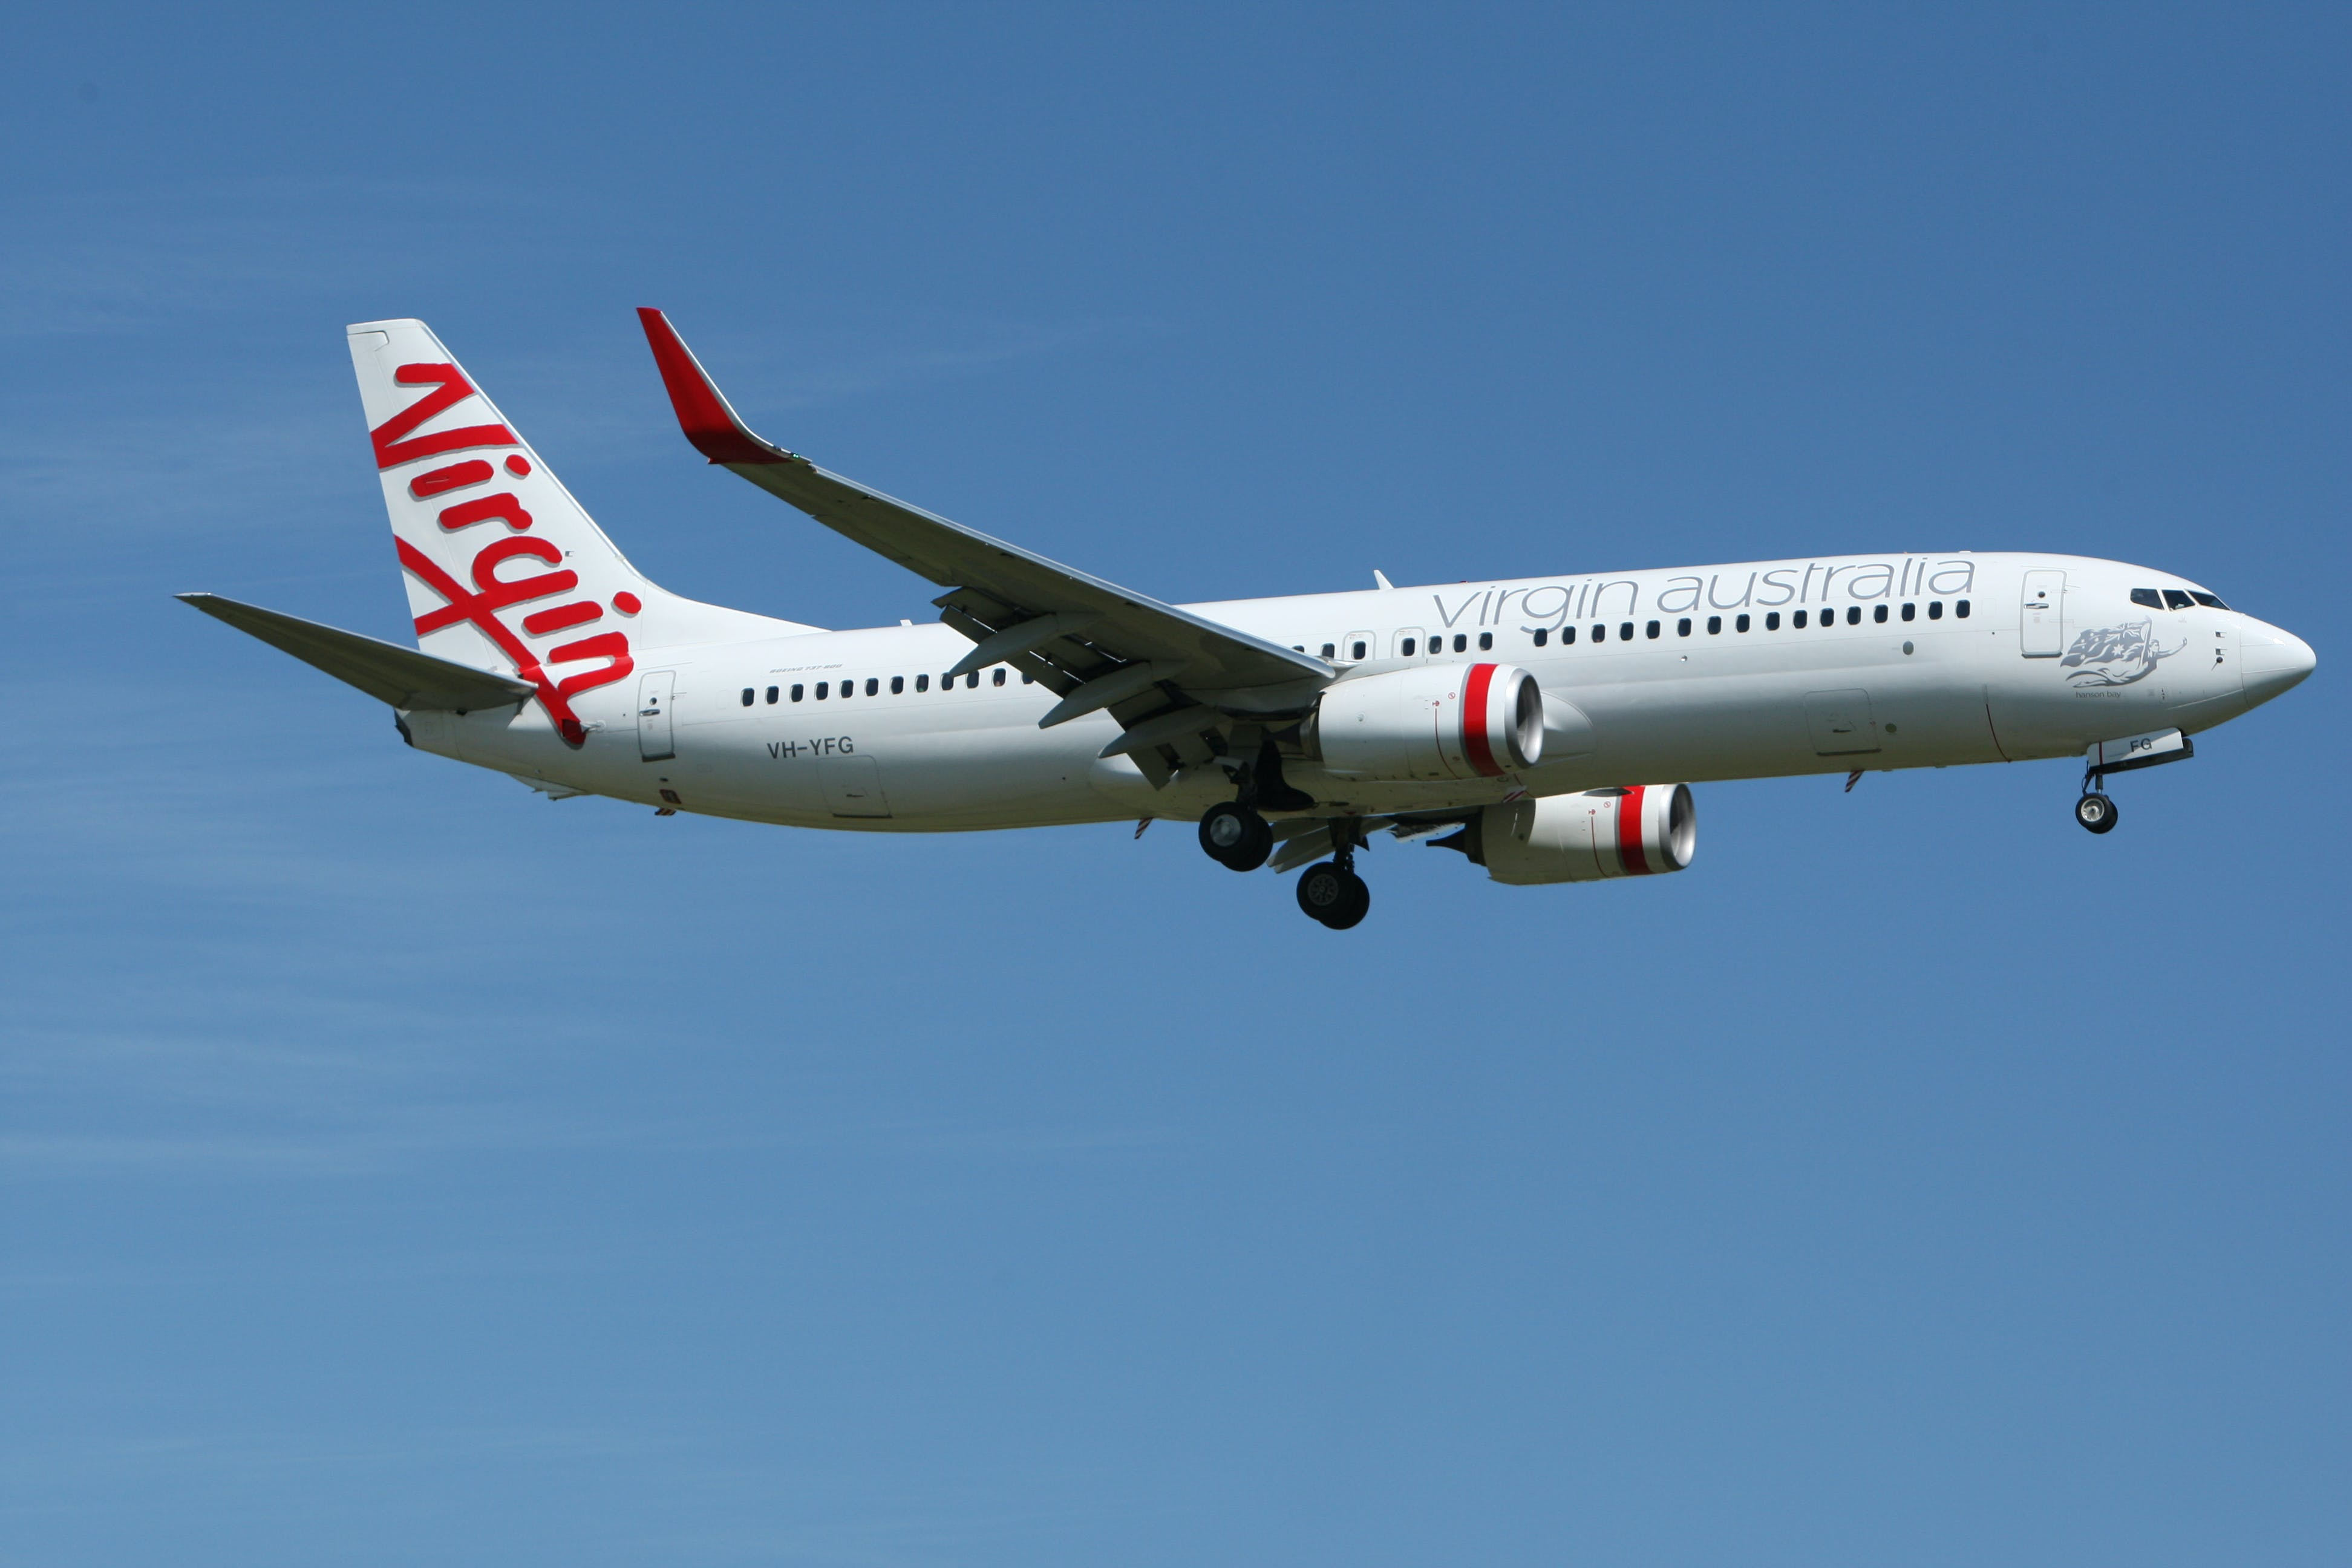 White and Red Virgin Australia Airplane Mid Air Under Blue and White Sky during Daytime